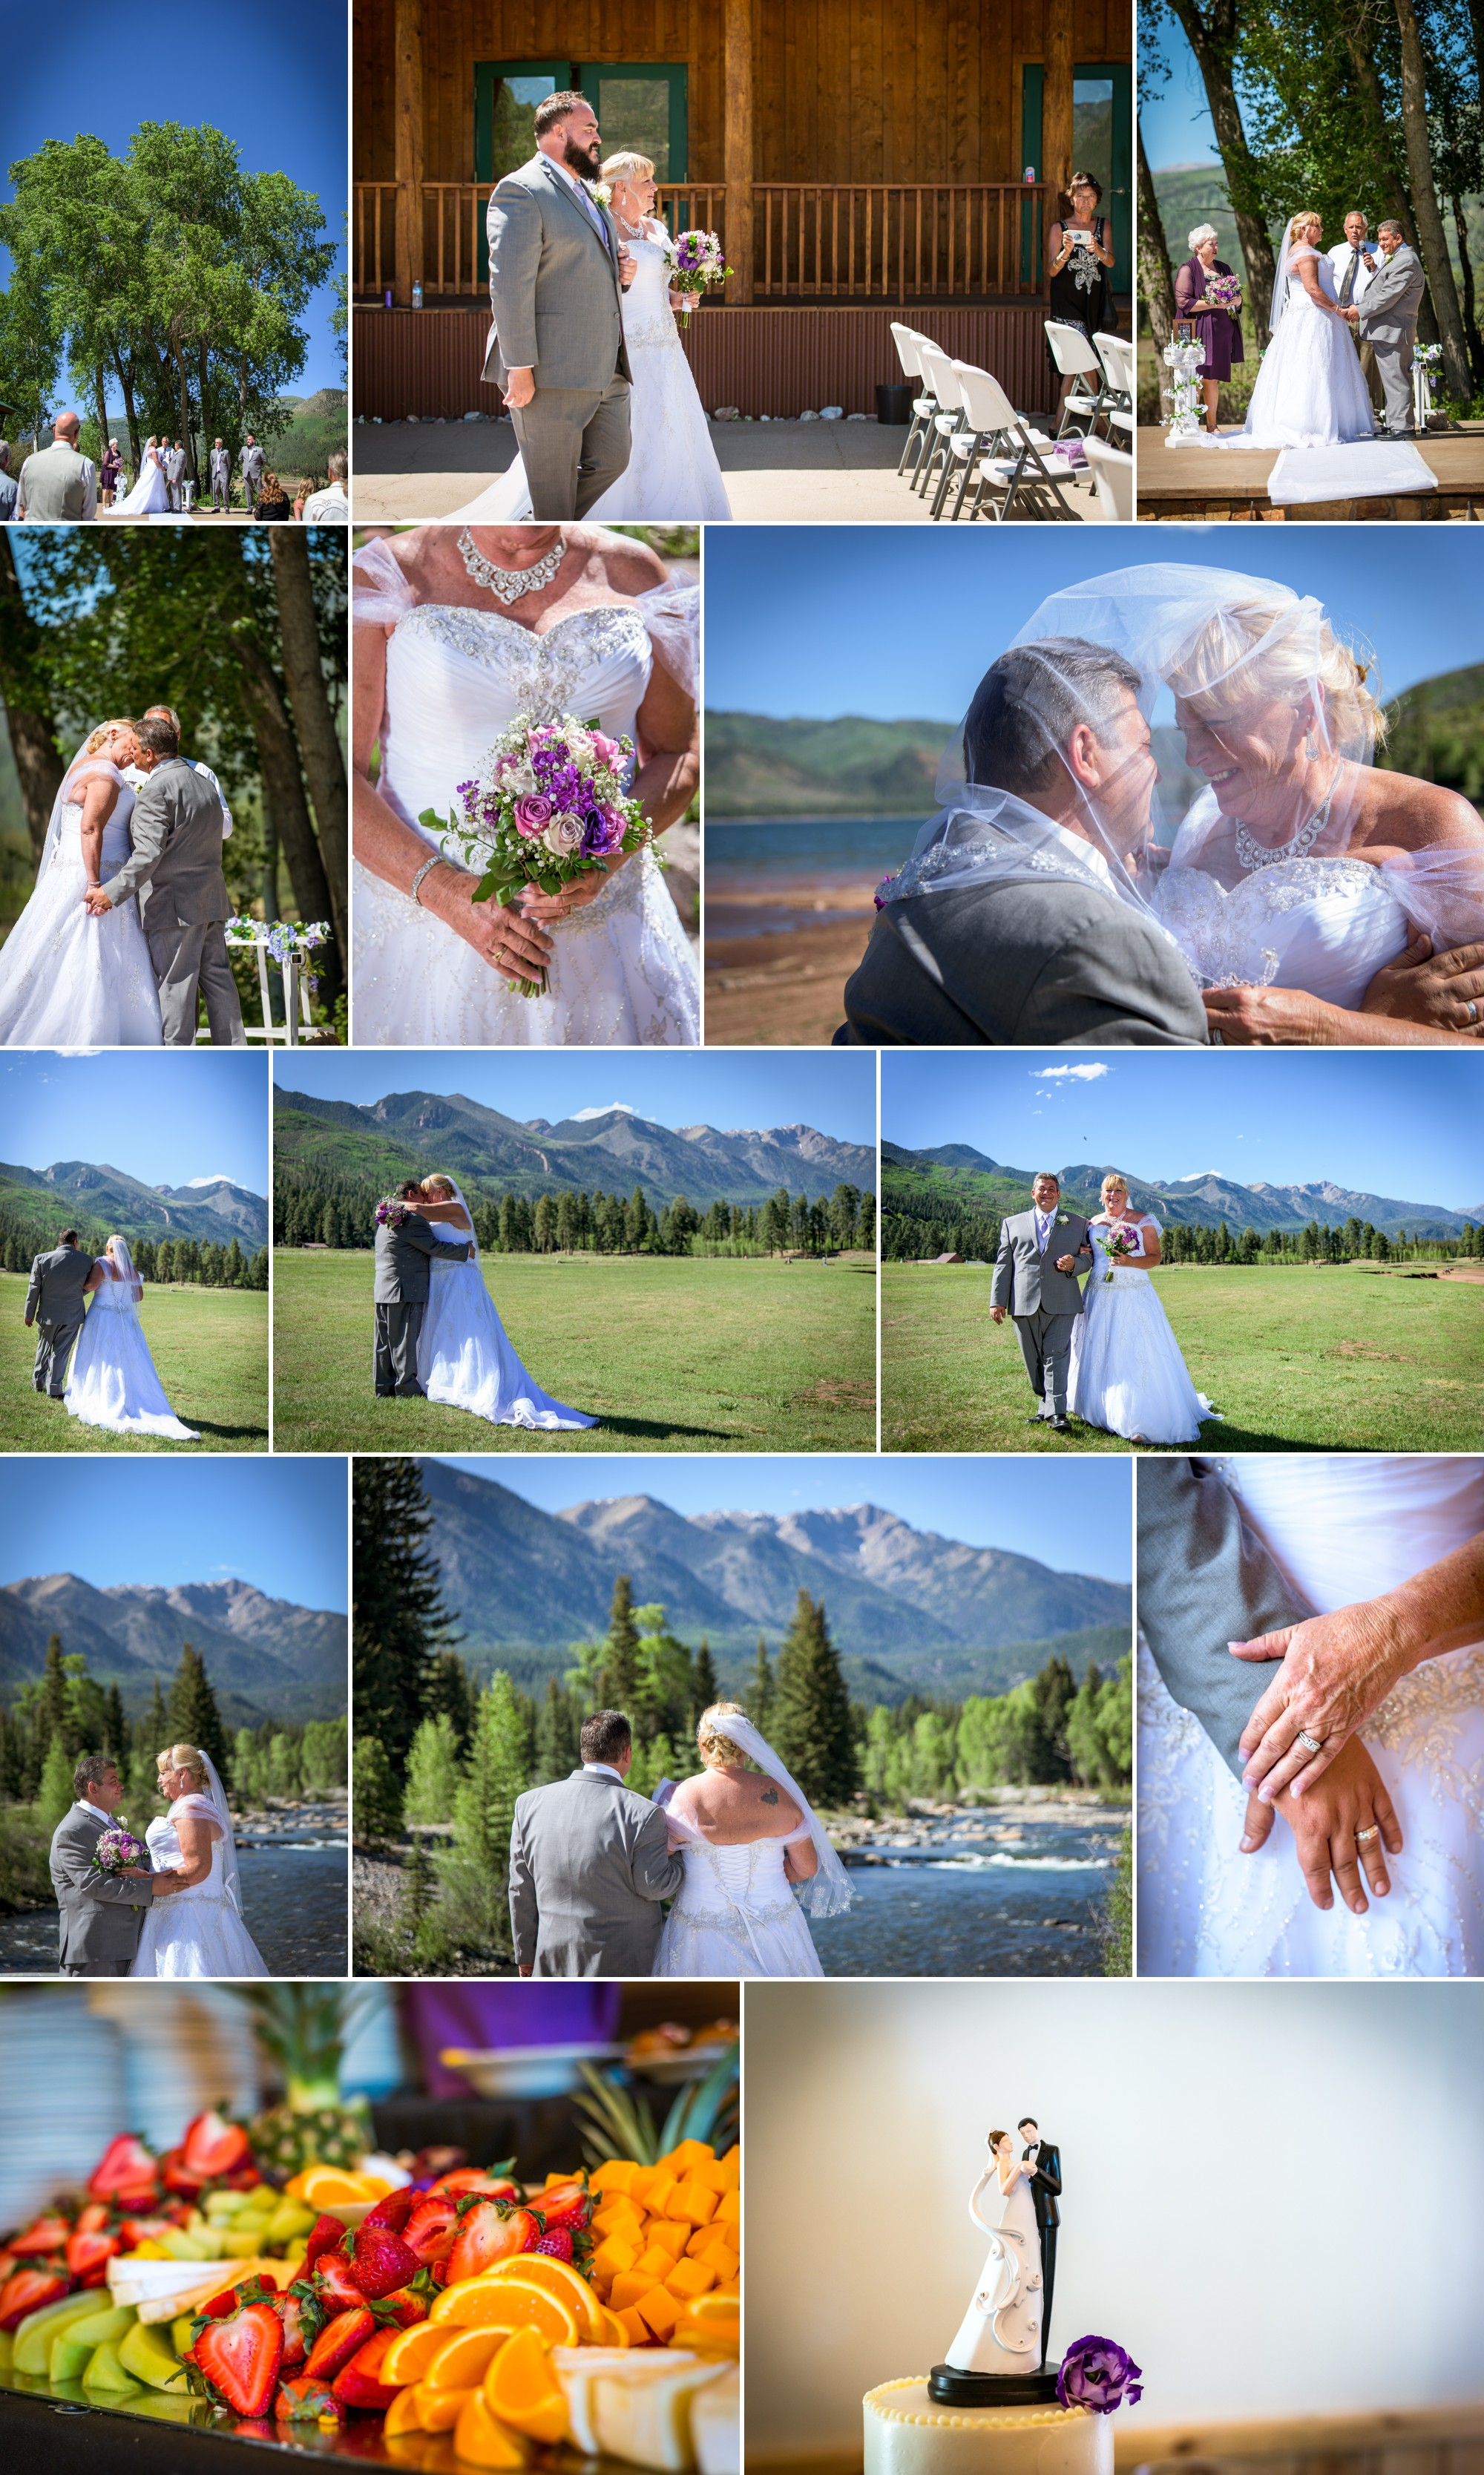 Wedding Photographed by Allison Ragsdale Photography in Durango CO Summer Wedding